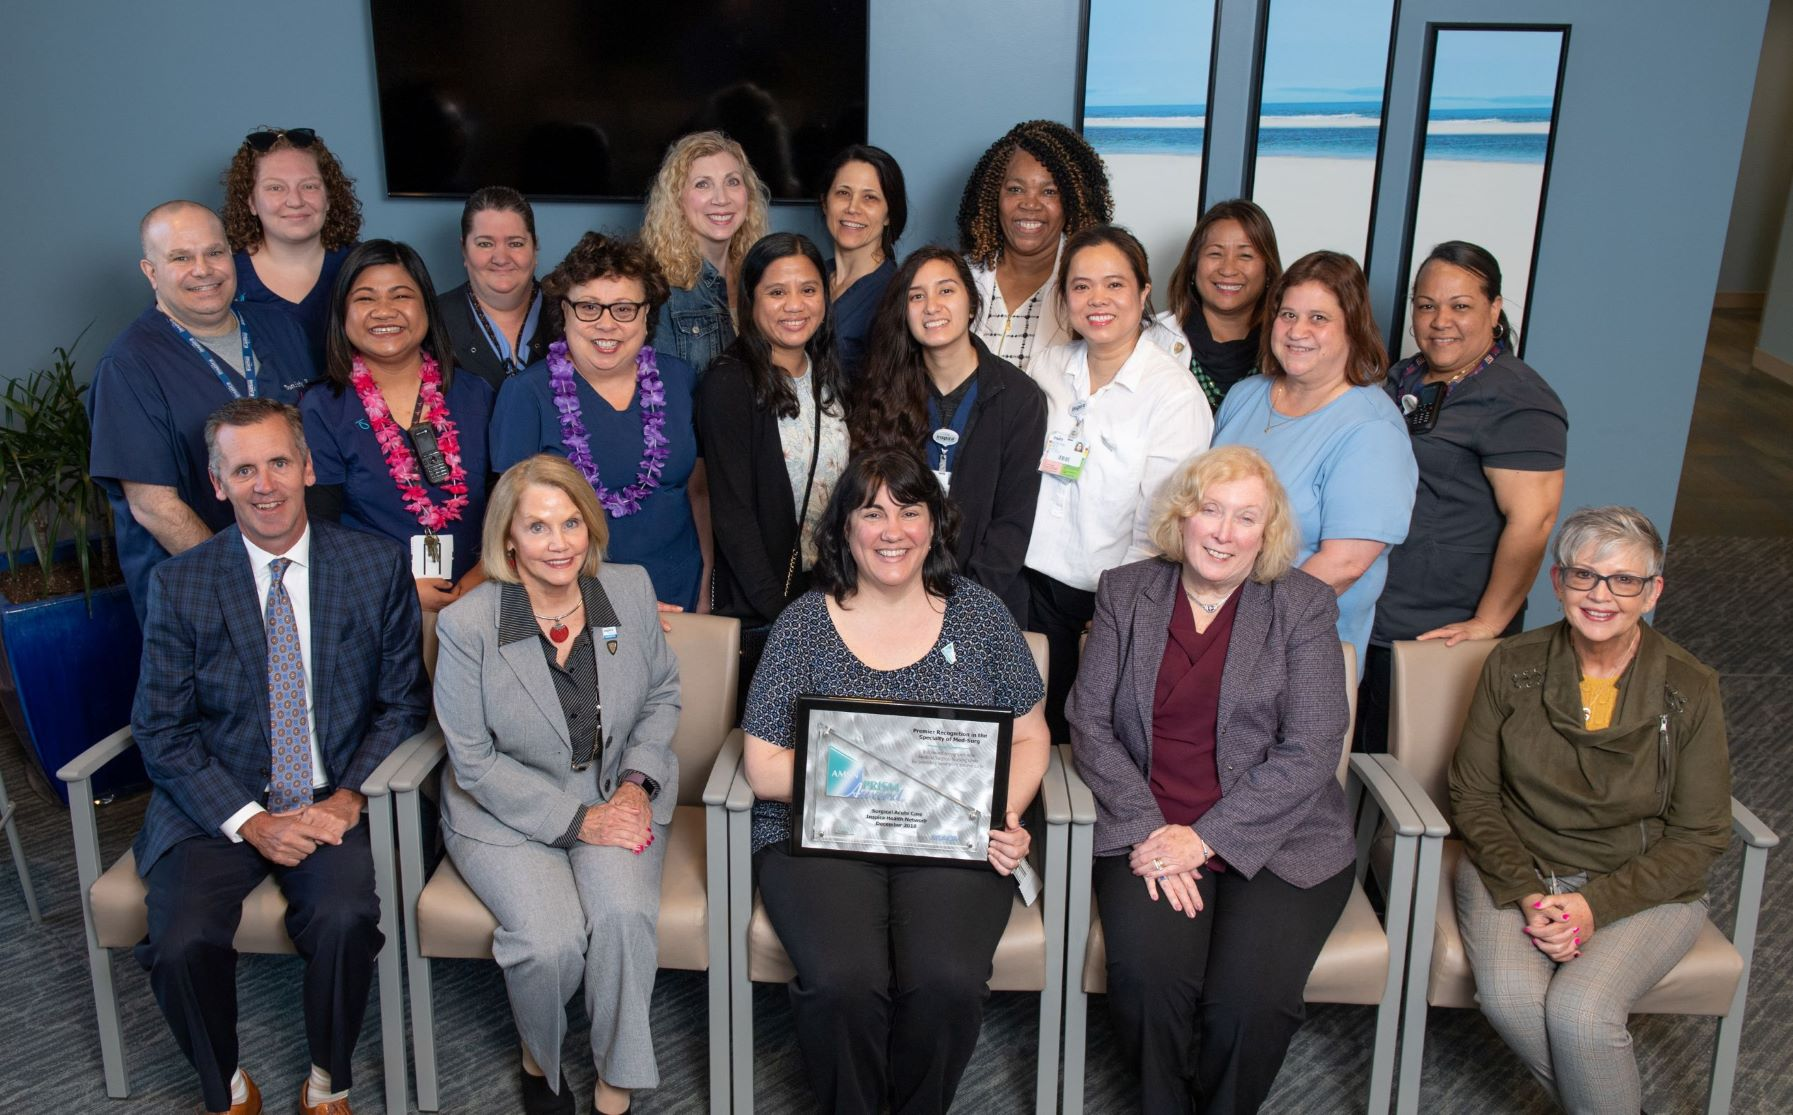 nspira Vineland's Surgical Acute Care Unit receiving the PRISM Award